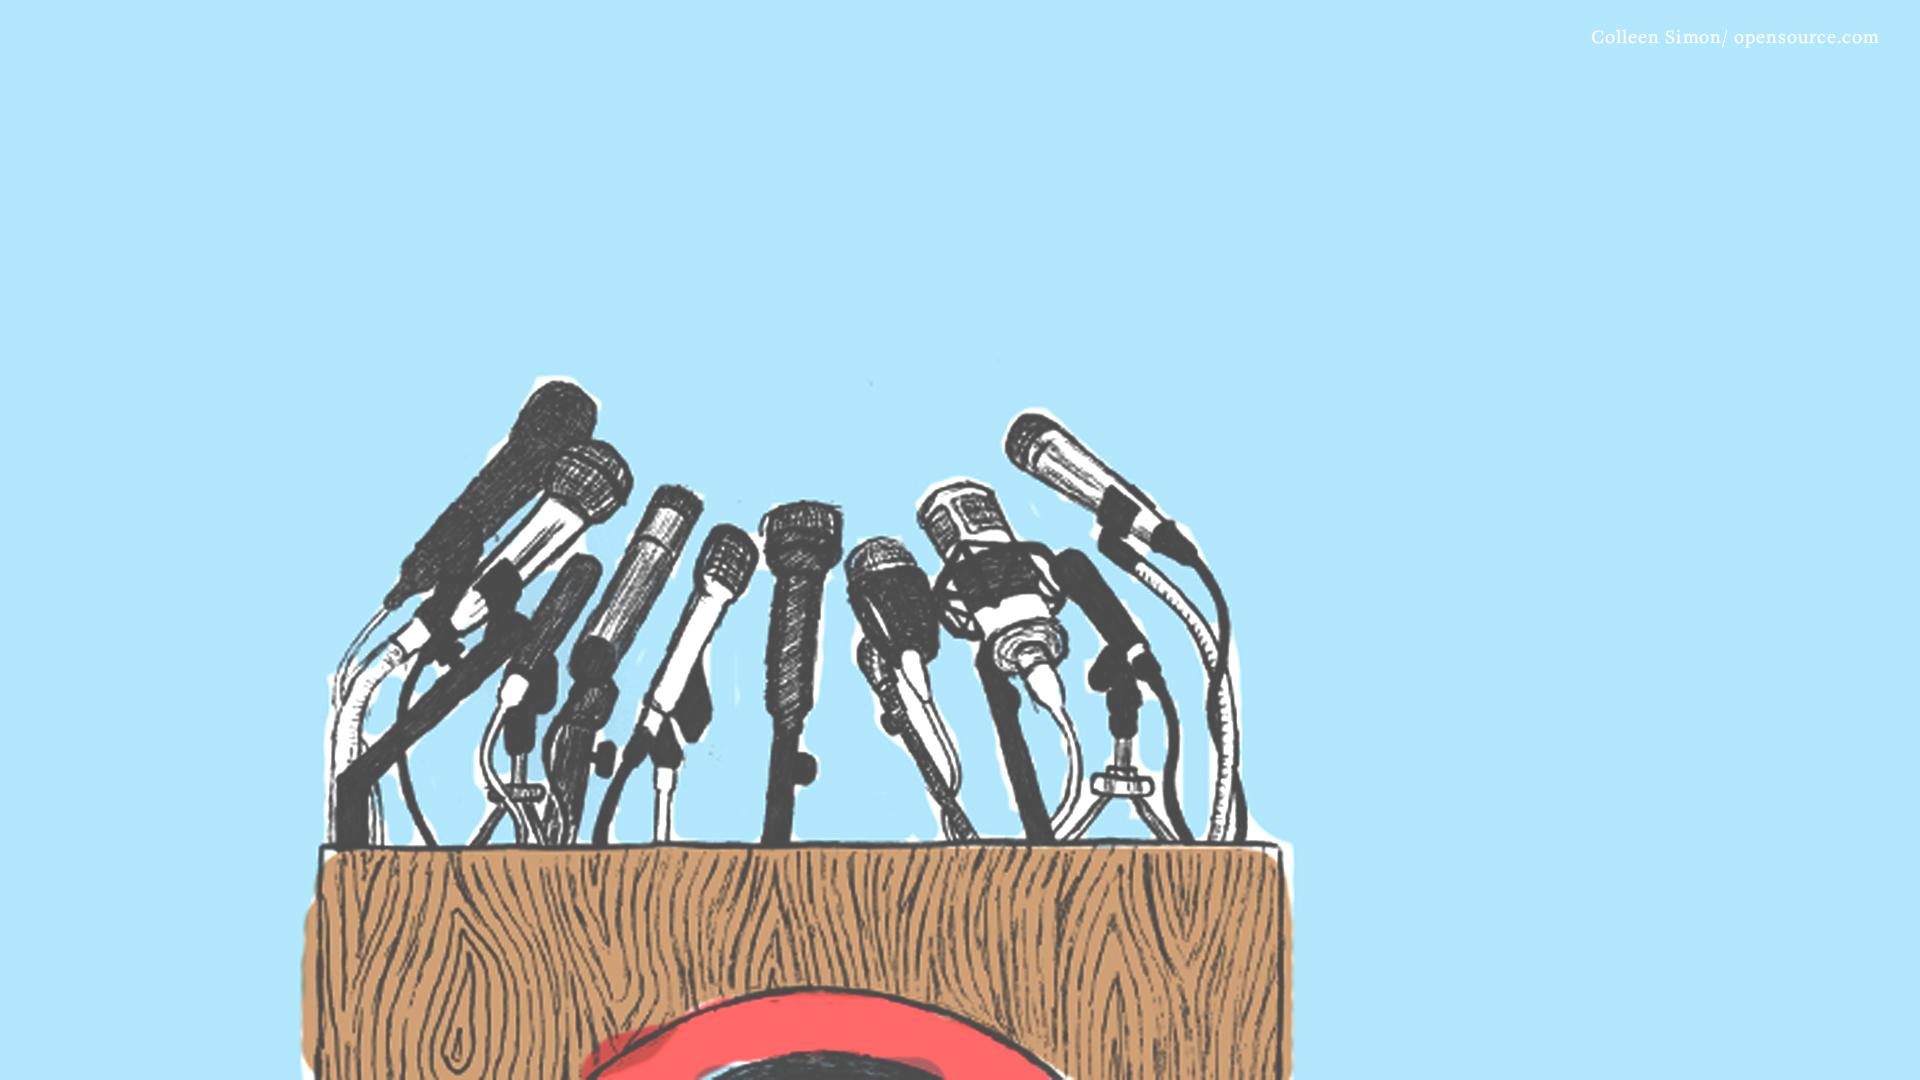 Illustration of podium with microphones